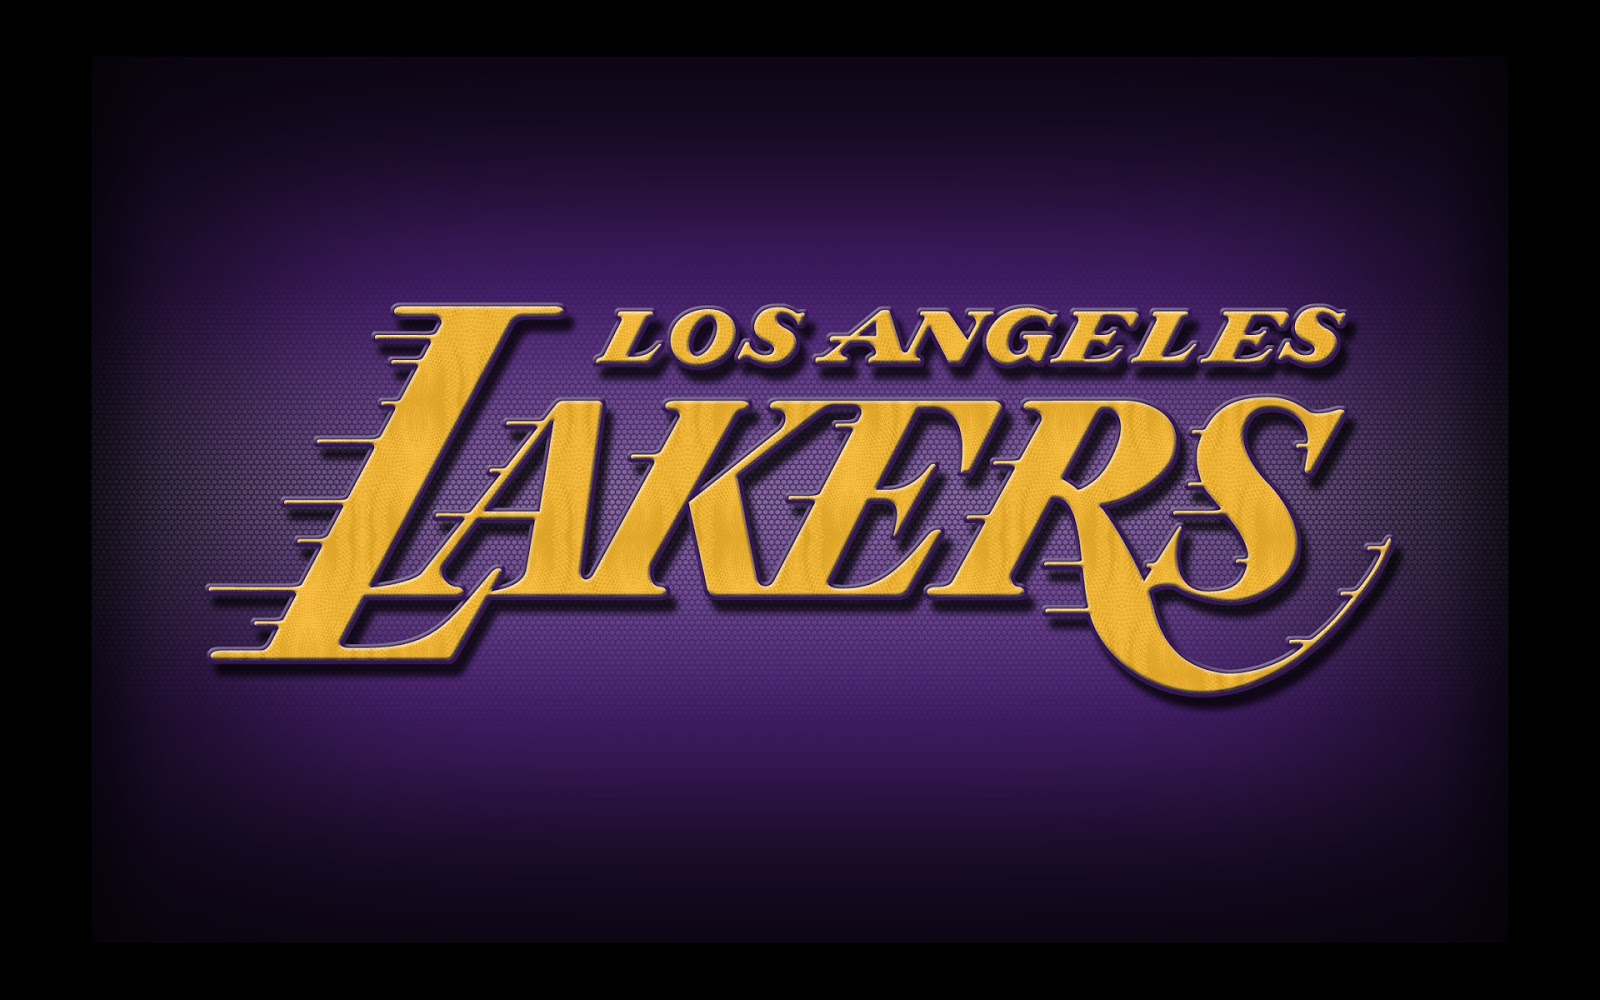 http://1.bp.blogspot.com/-kXXPydWVfDc/UOqyOWd2n9I/AAAAAAAAcu8/b_-xHbaiPVM/s1600/La+Lakers+Basketball+Club+Logo+Wallpaper+2013+04.jpg